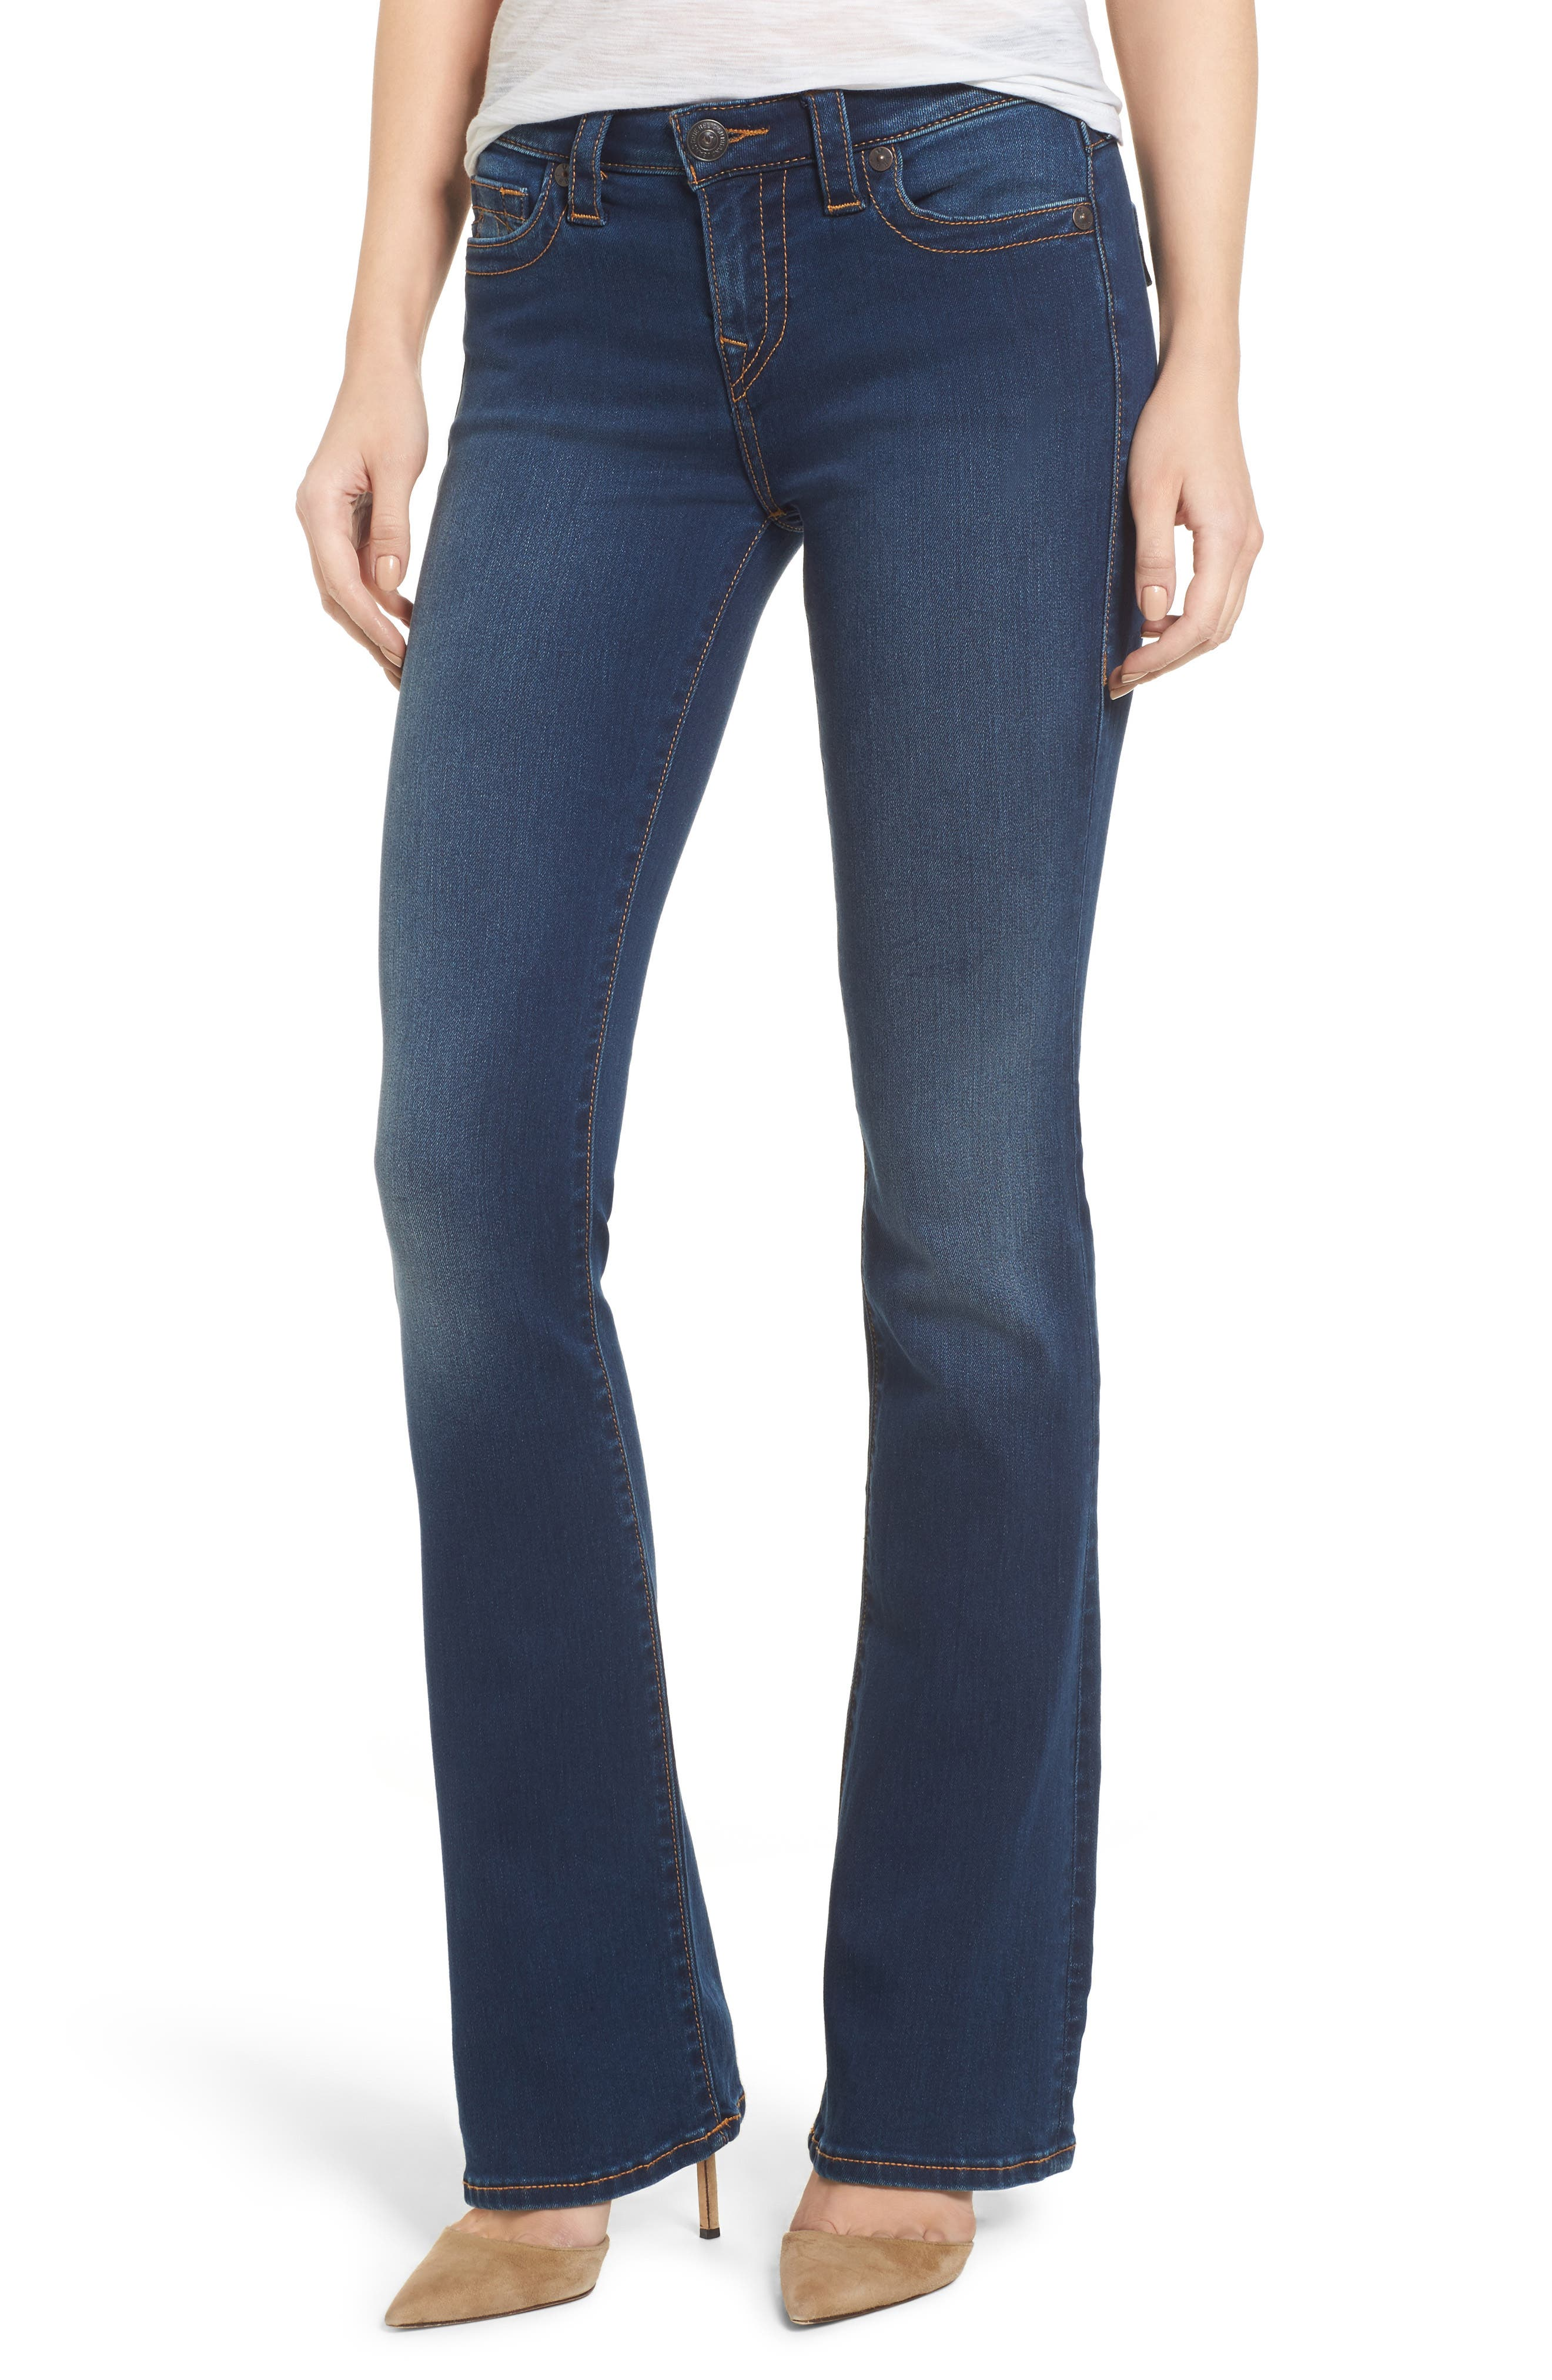 Lands end womens bootcut jeans